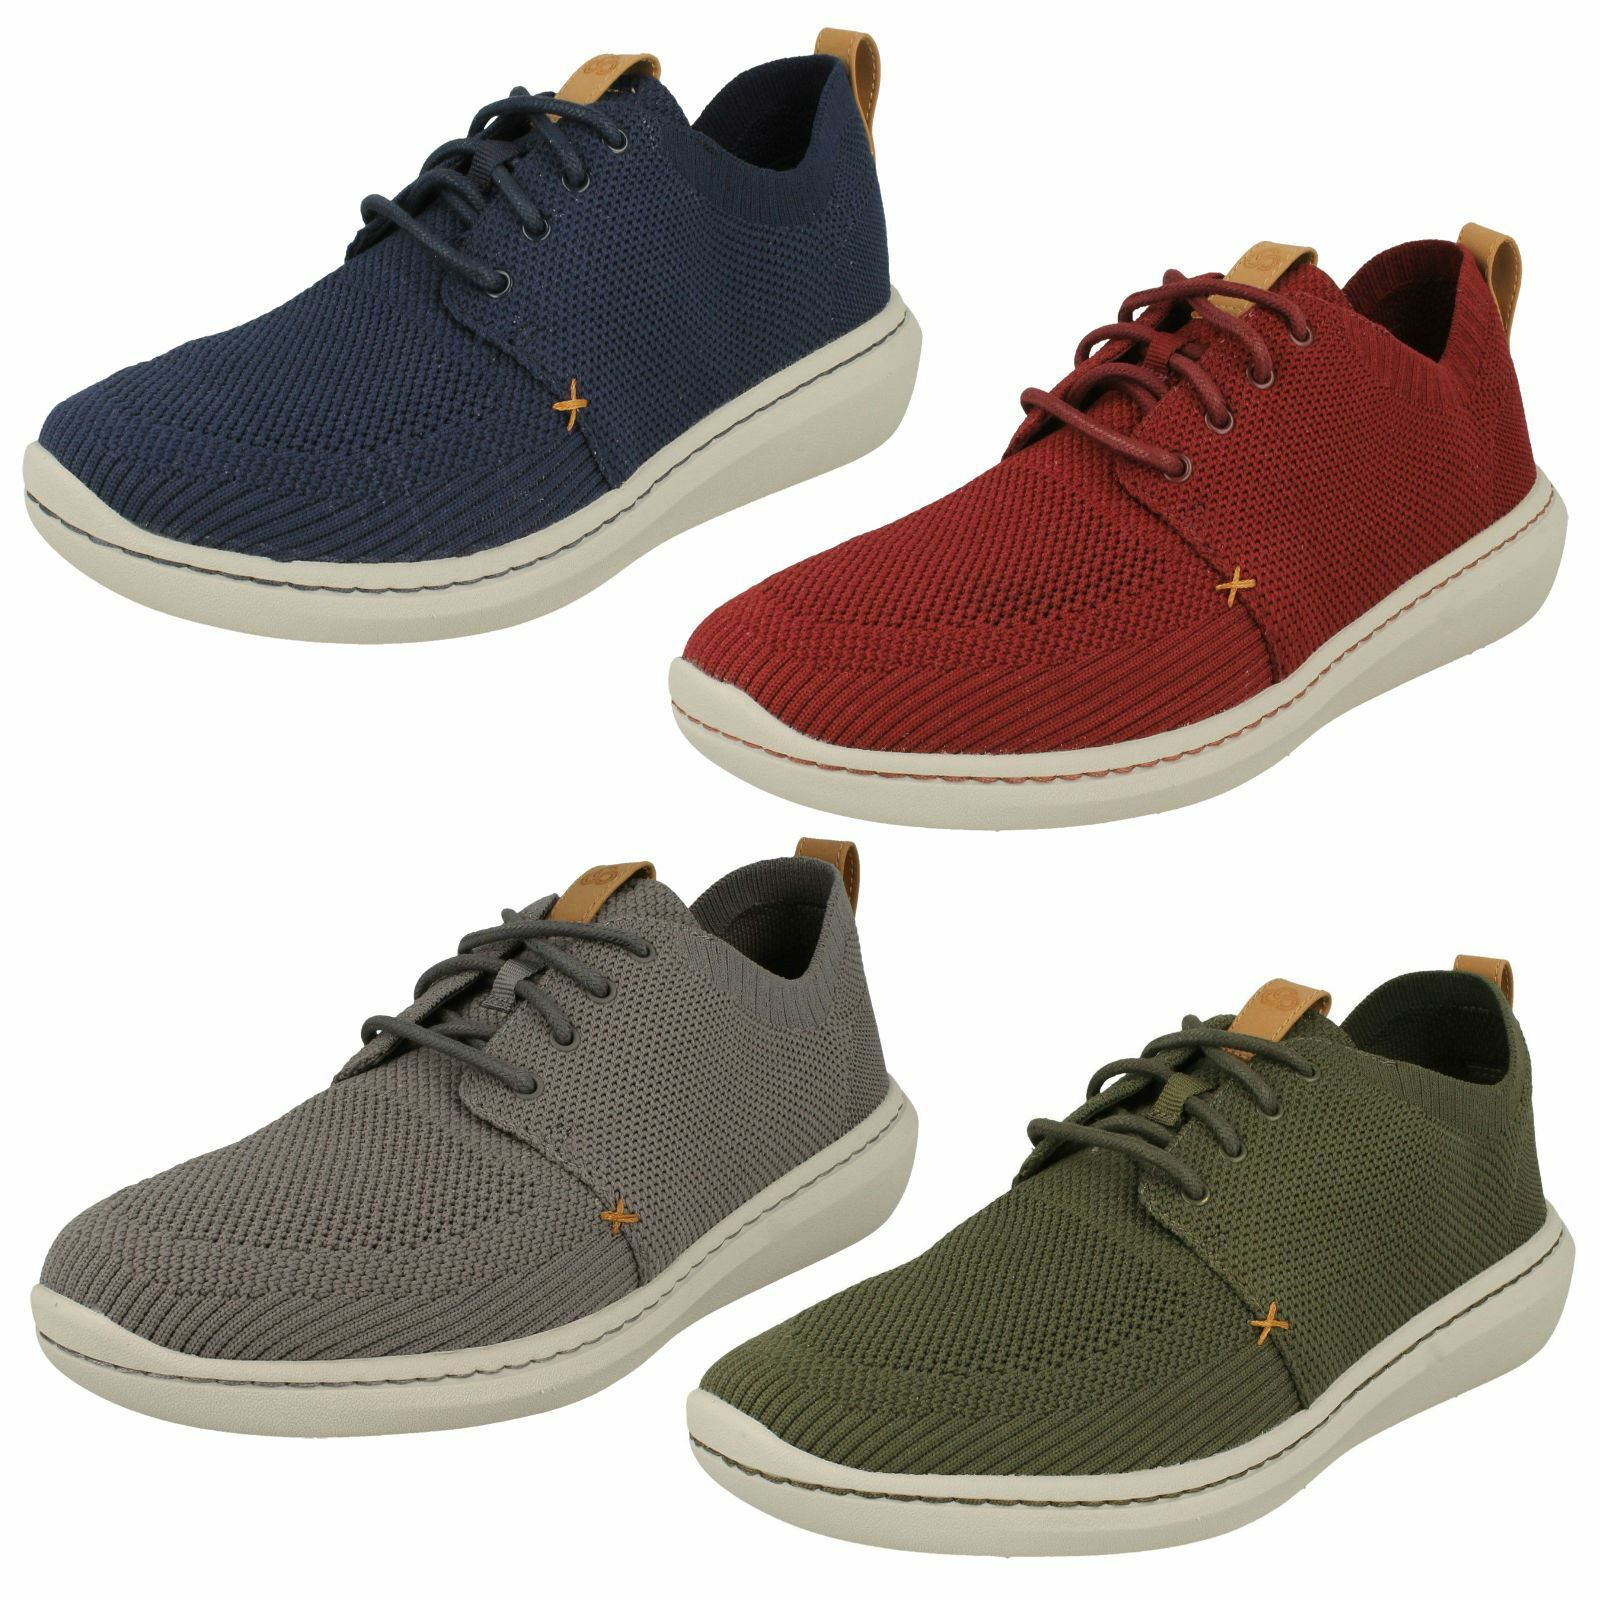 Up Uomo Clarks Casual Lace Up  Schuhes 'Step Urban Mix' 2b0173